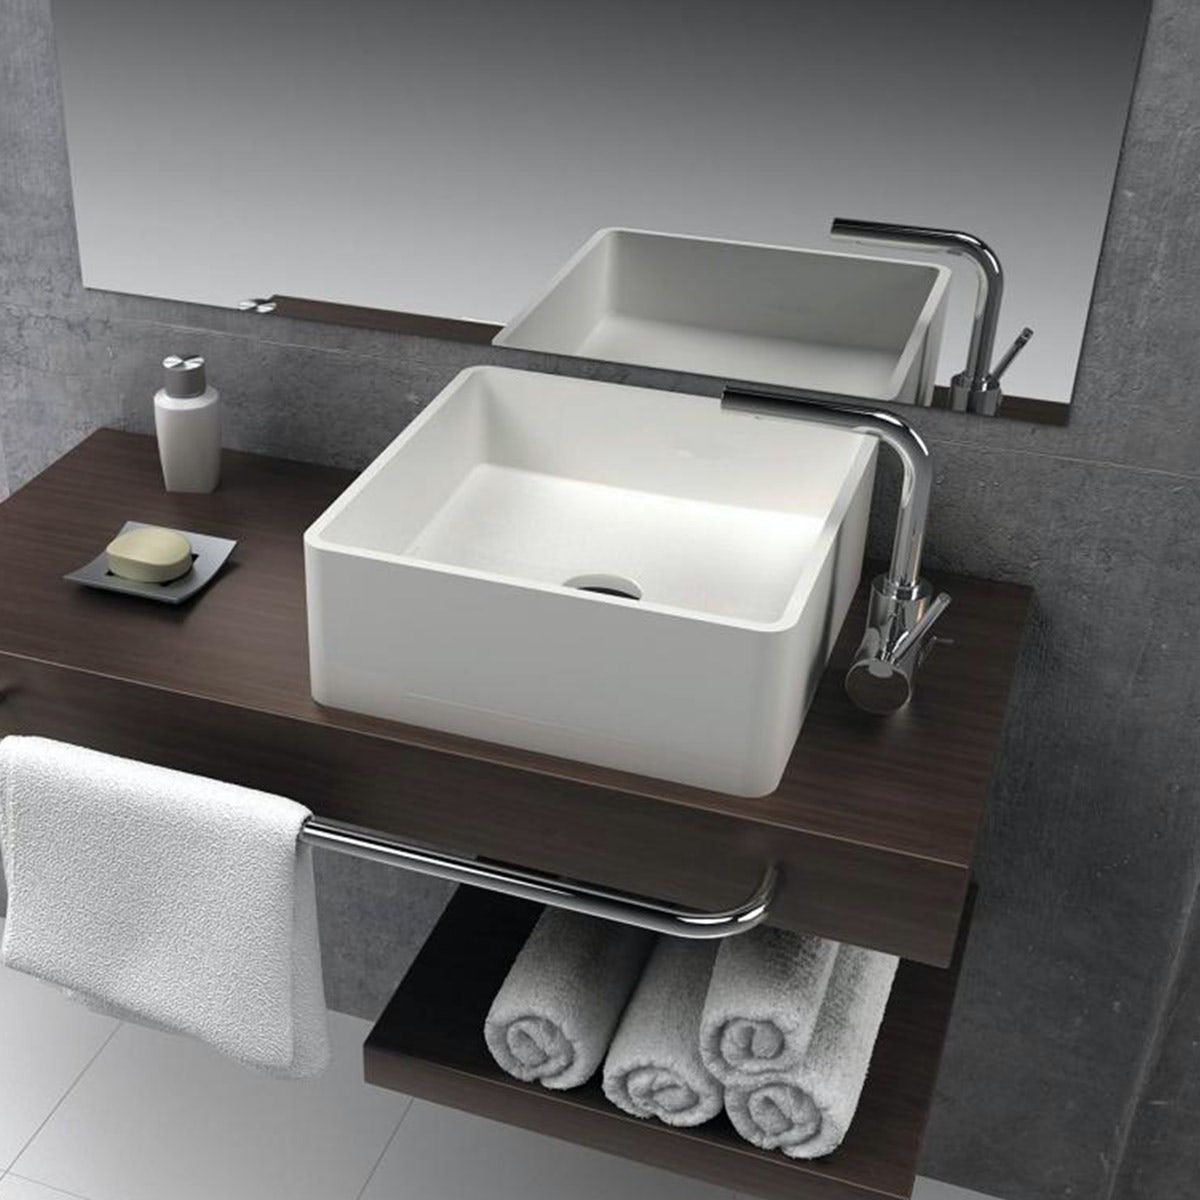 Mode Carpi solid surface stone resin square countertop basin 400mm